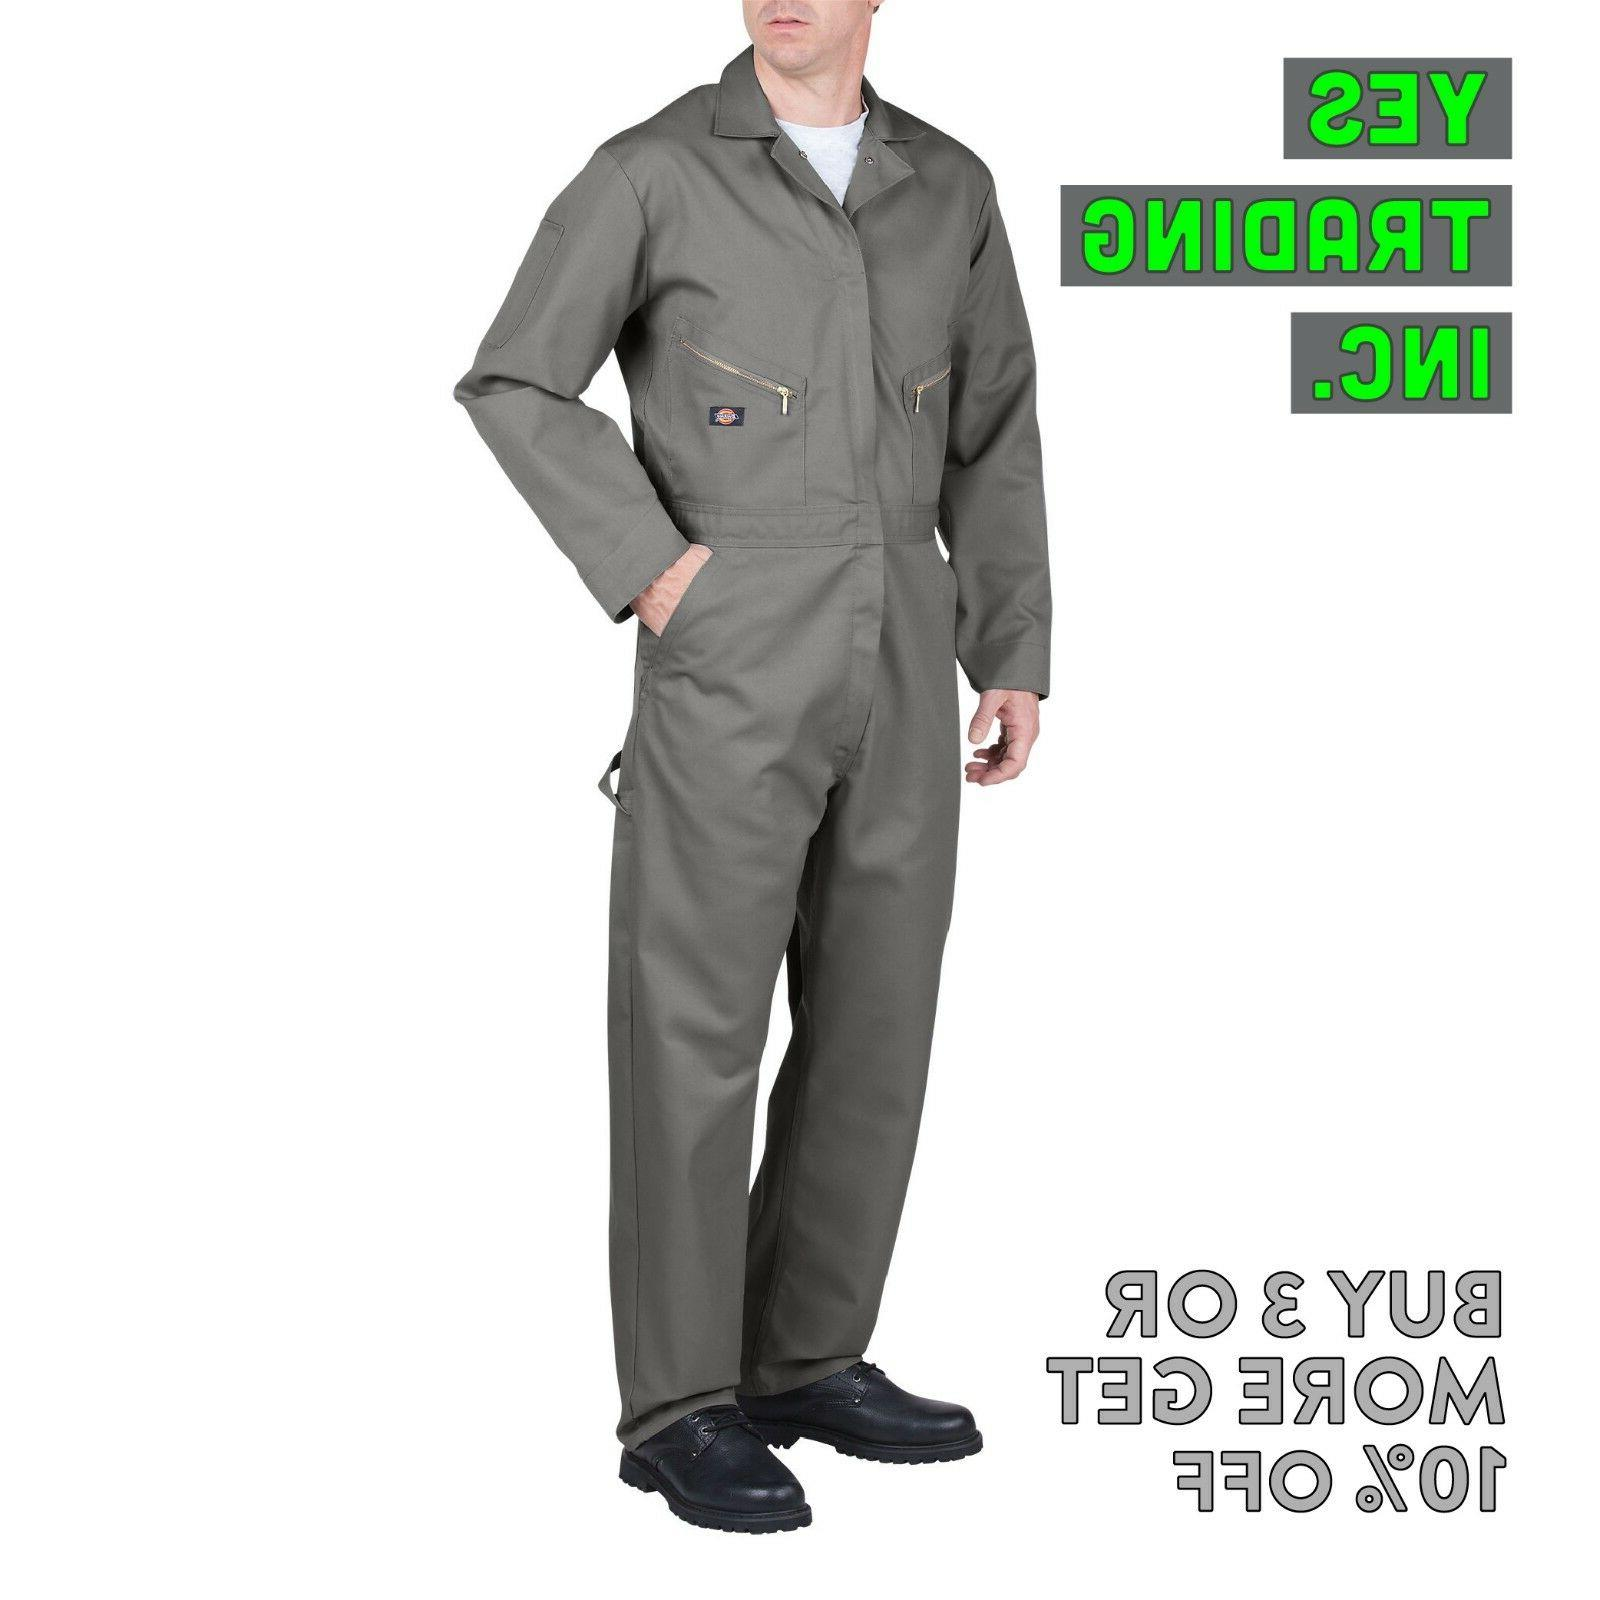 LONG COVERALL MECHANIC SUIT JUMP SUIT